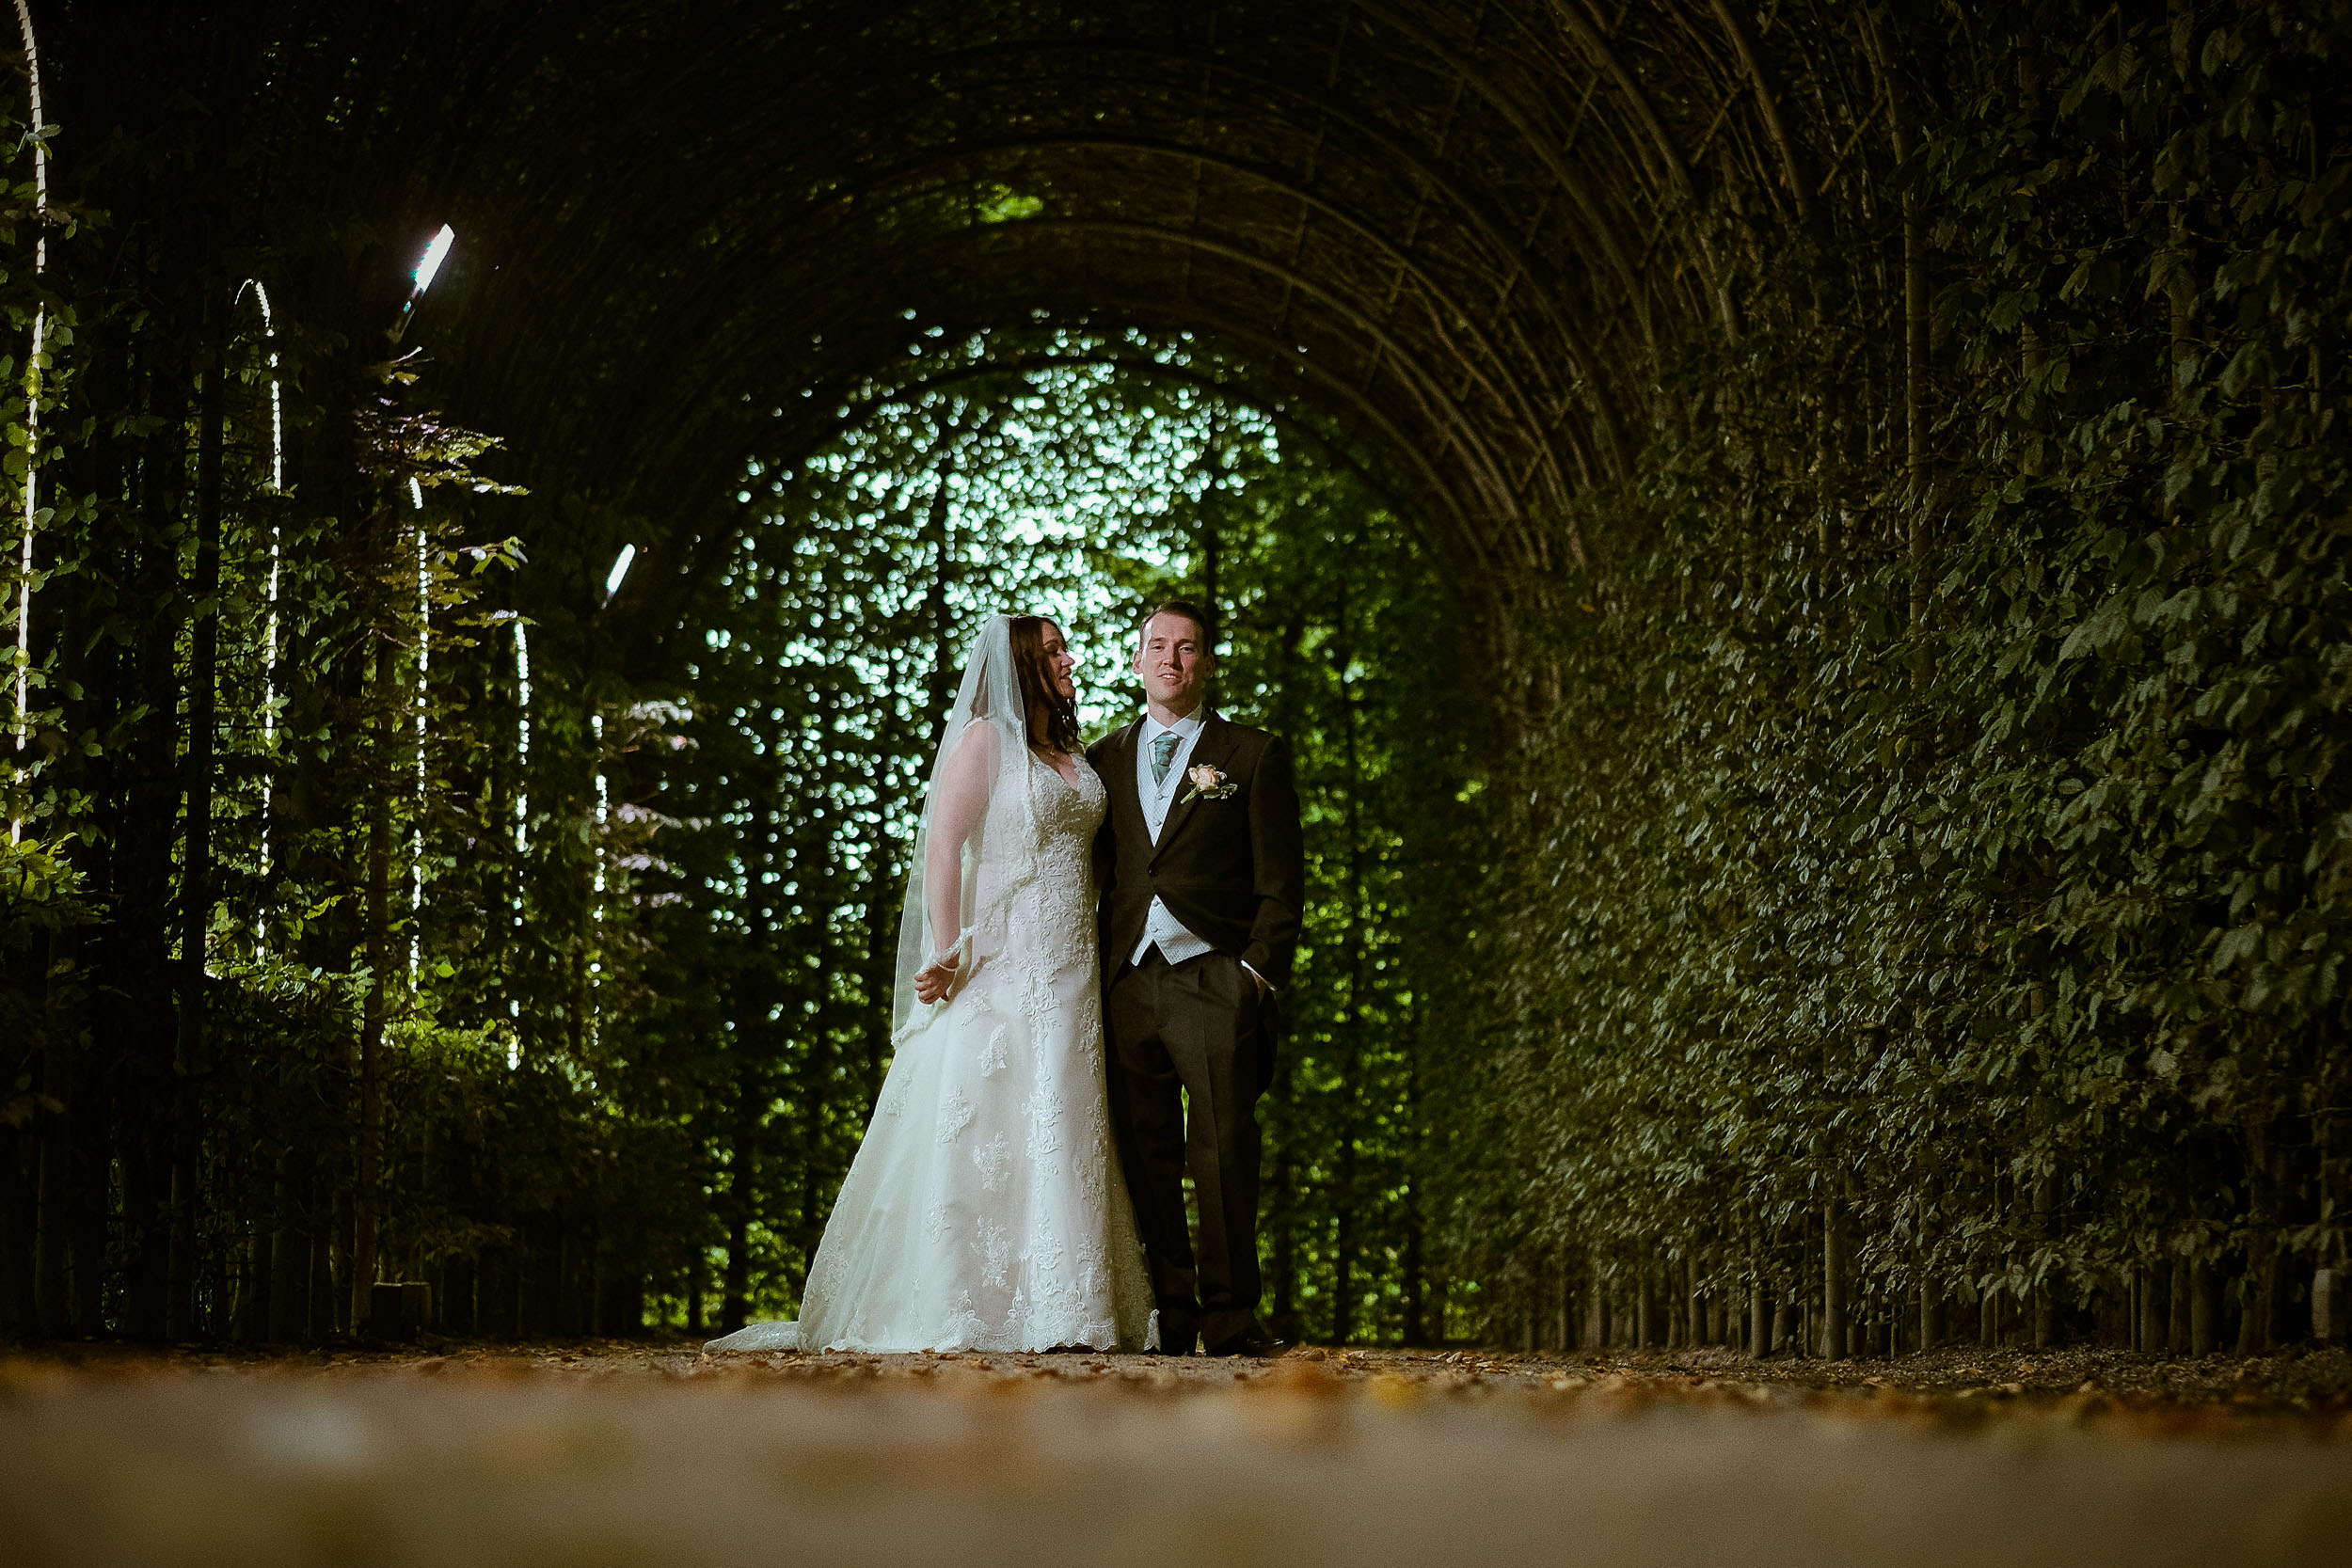 Bride and groom pose under vegetation arches